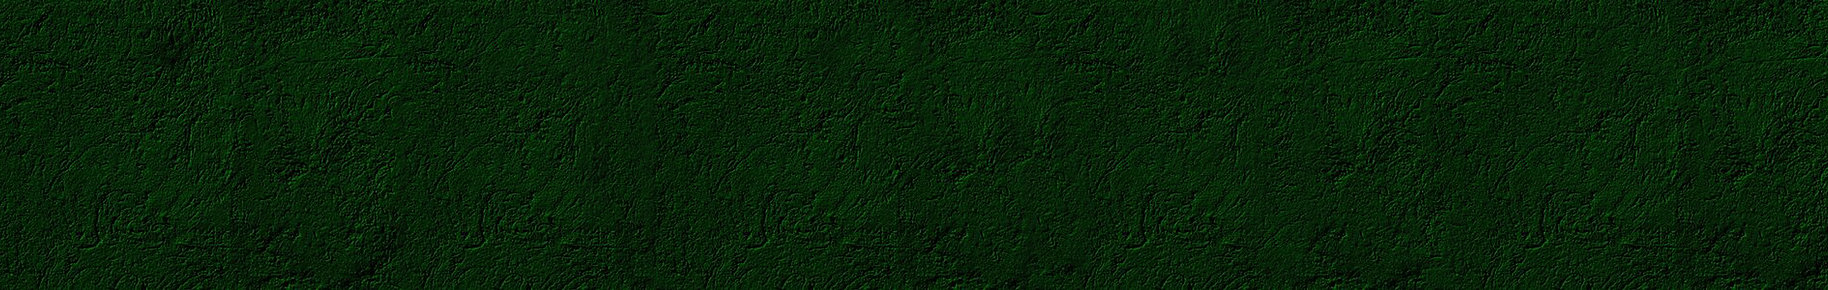 dark-green-wall-texture-for-background-o